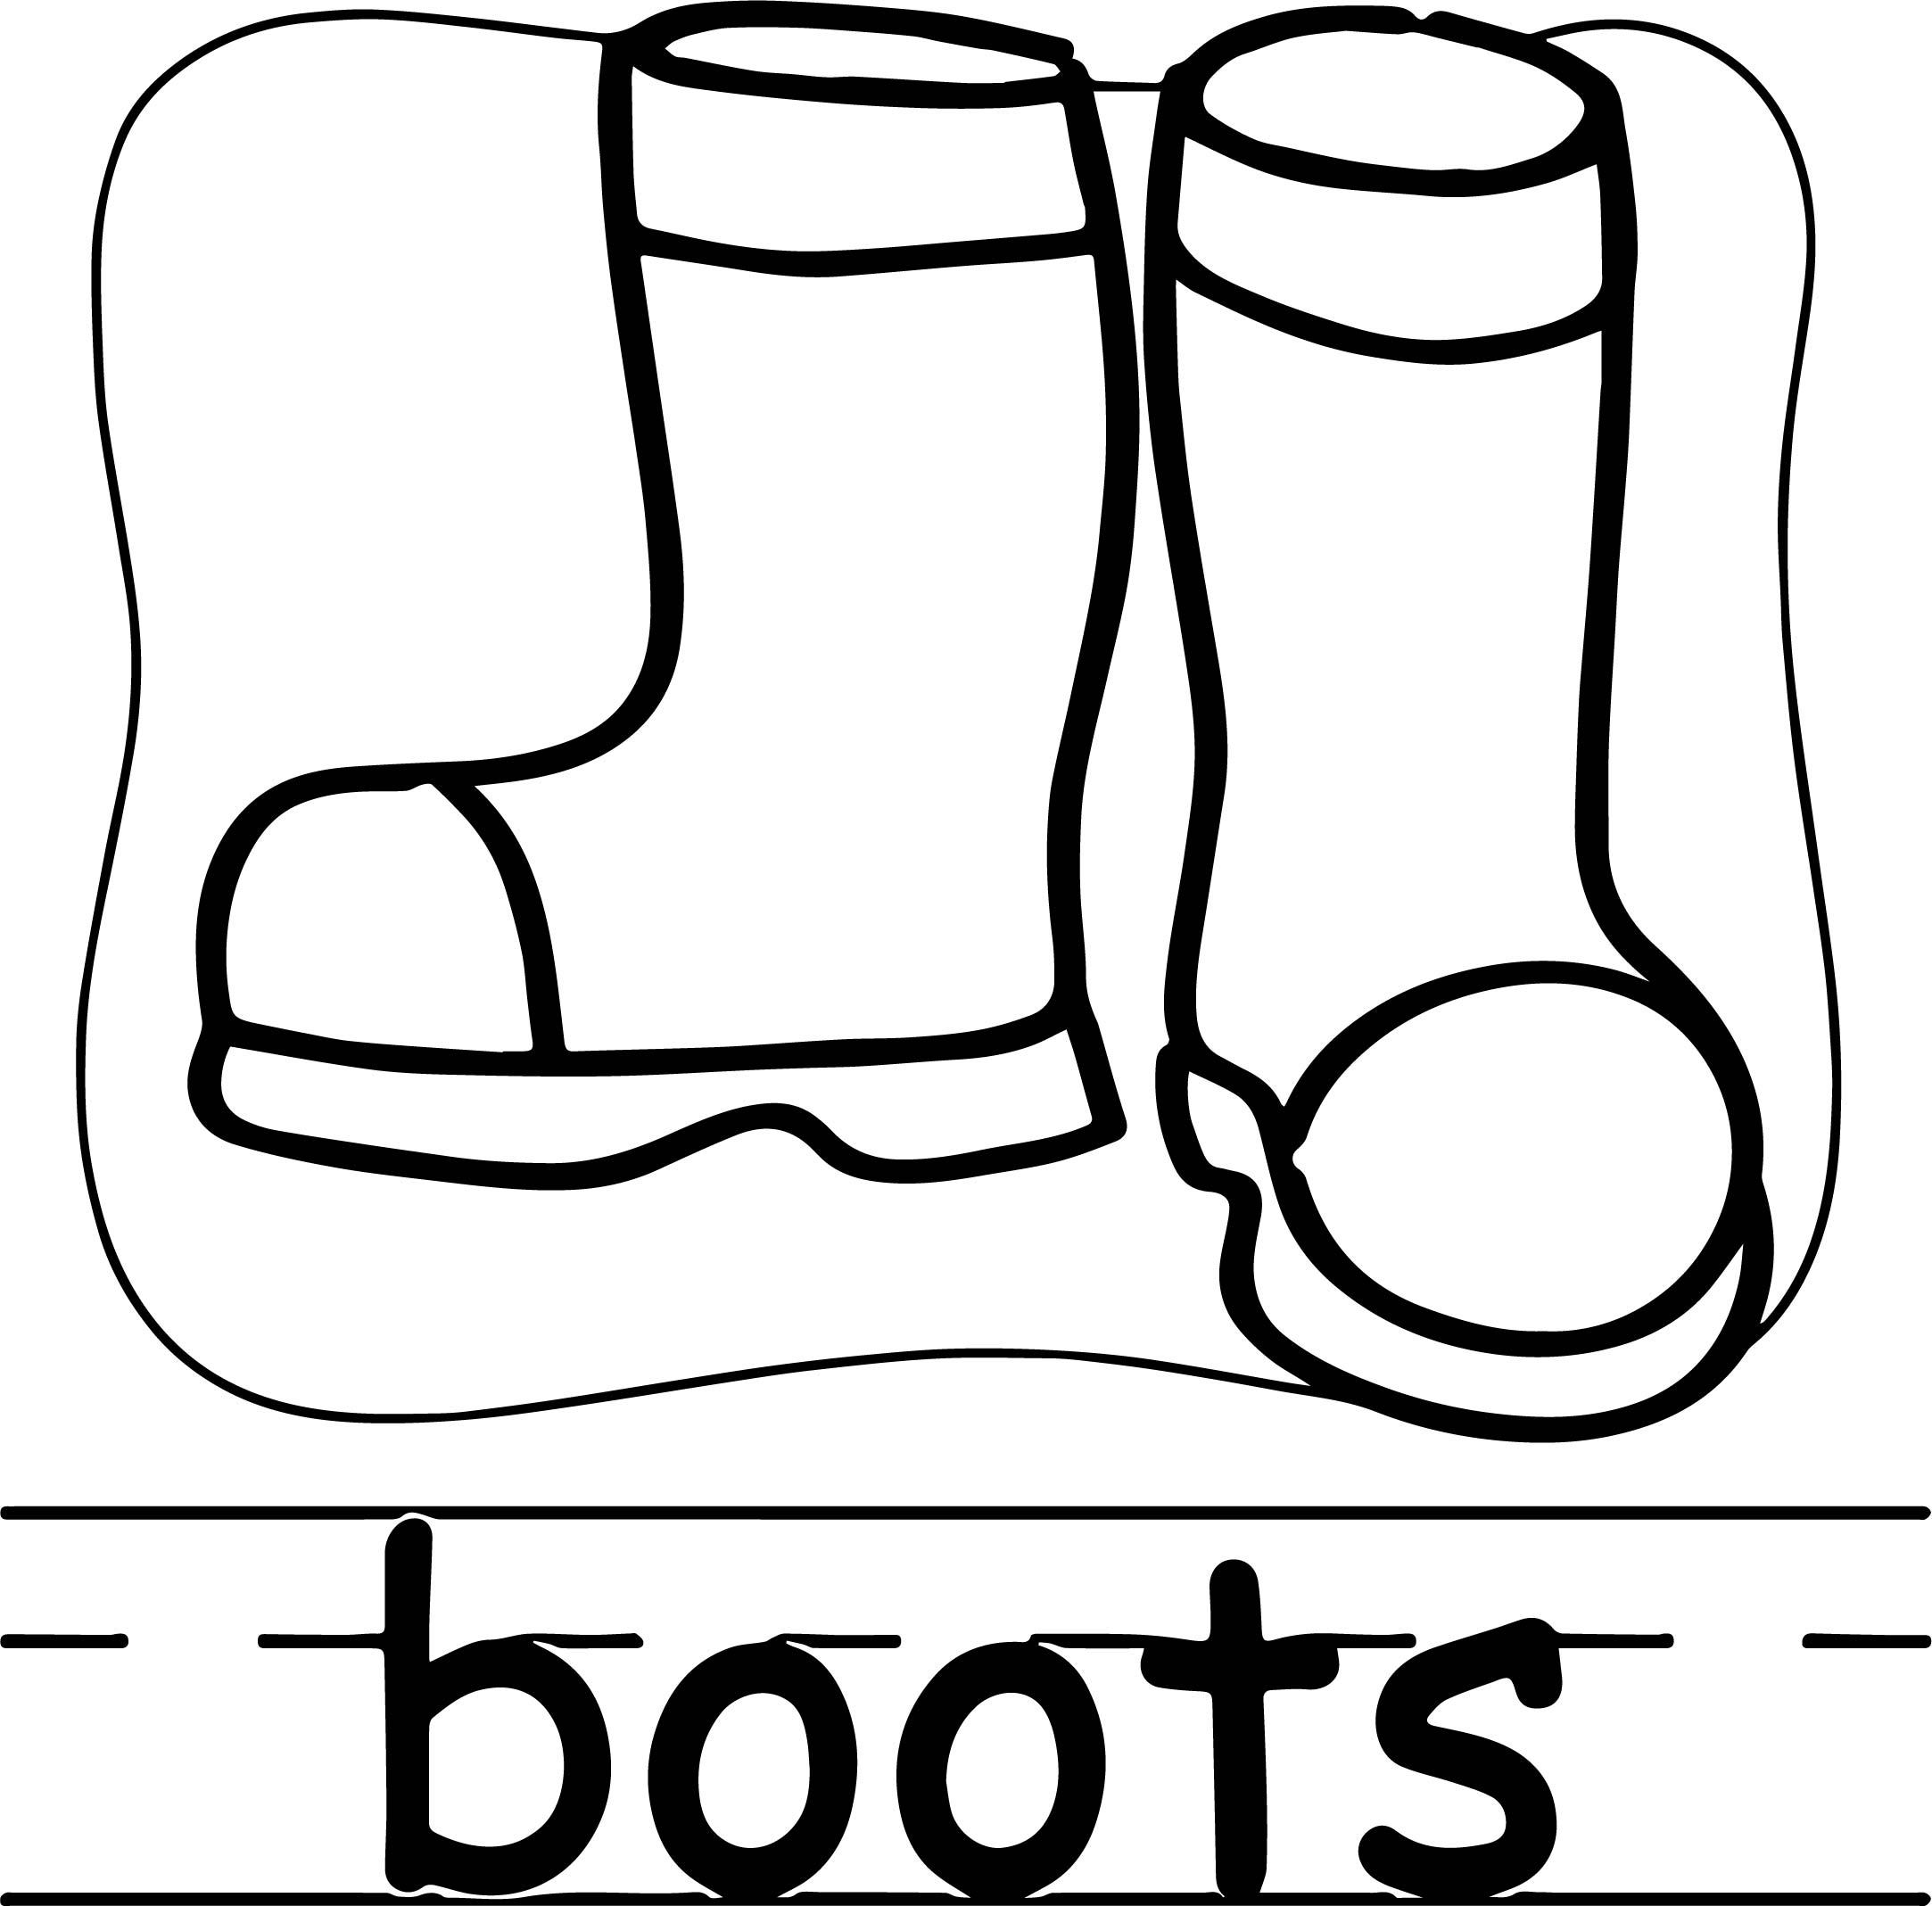 99 ideas Boot Coloring Page on wwwkankanwzcom